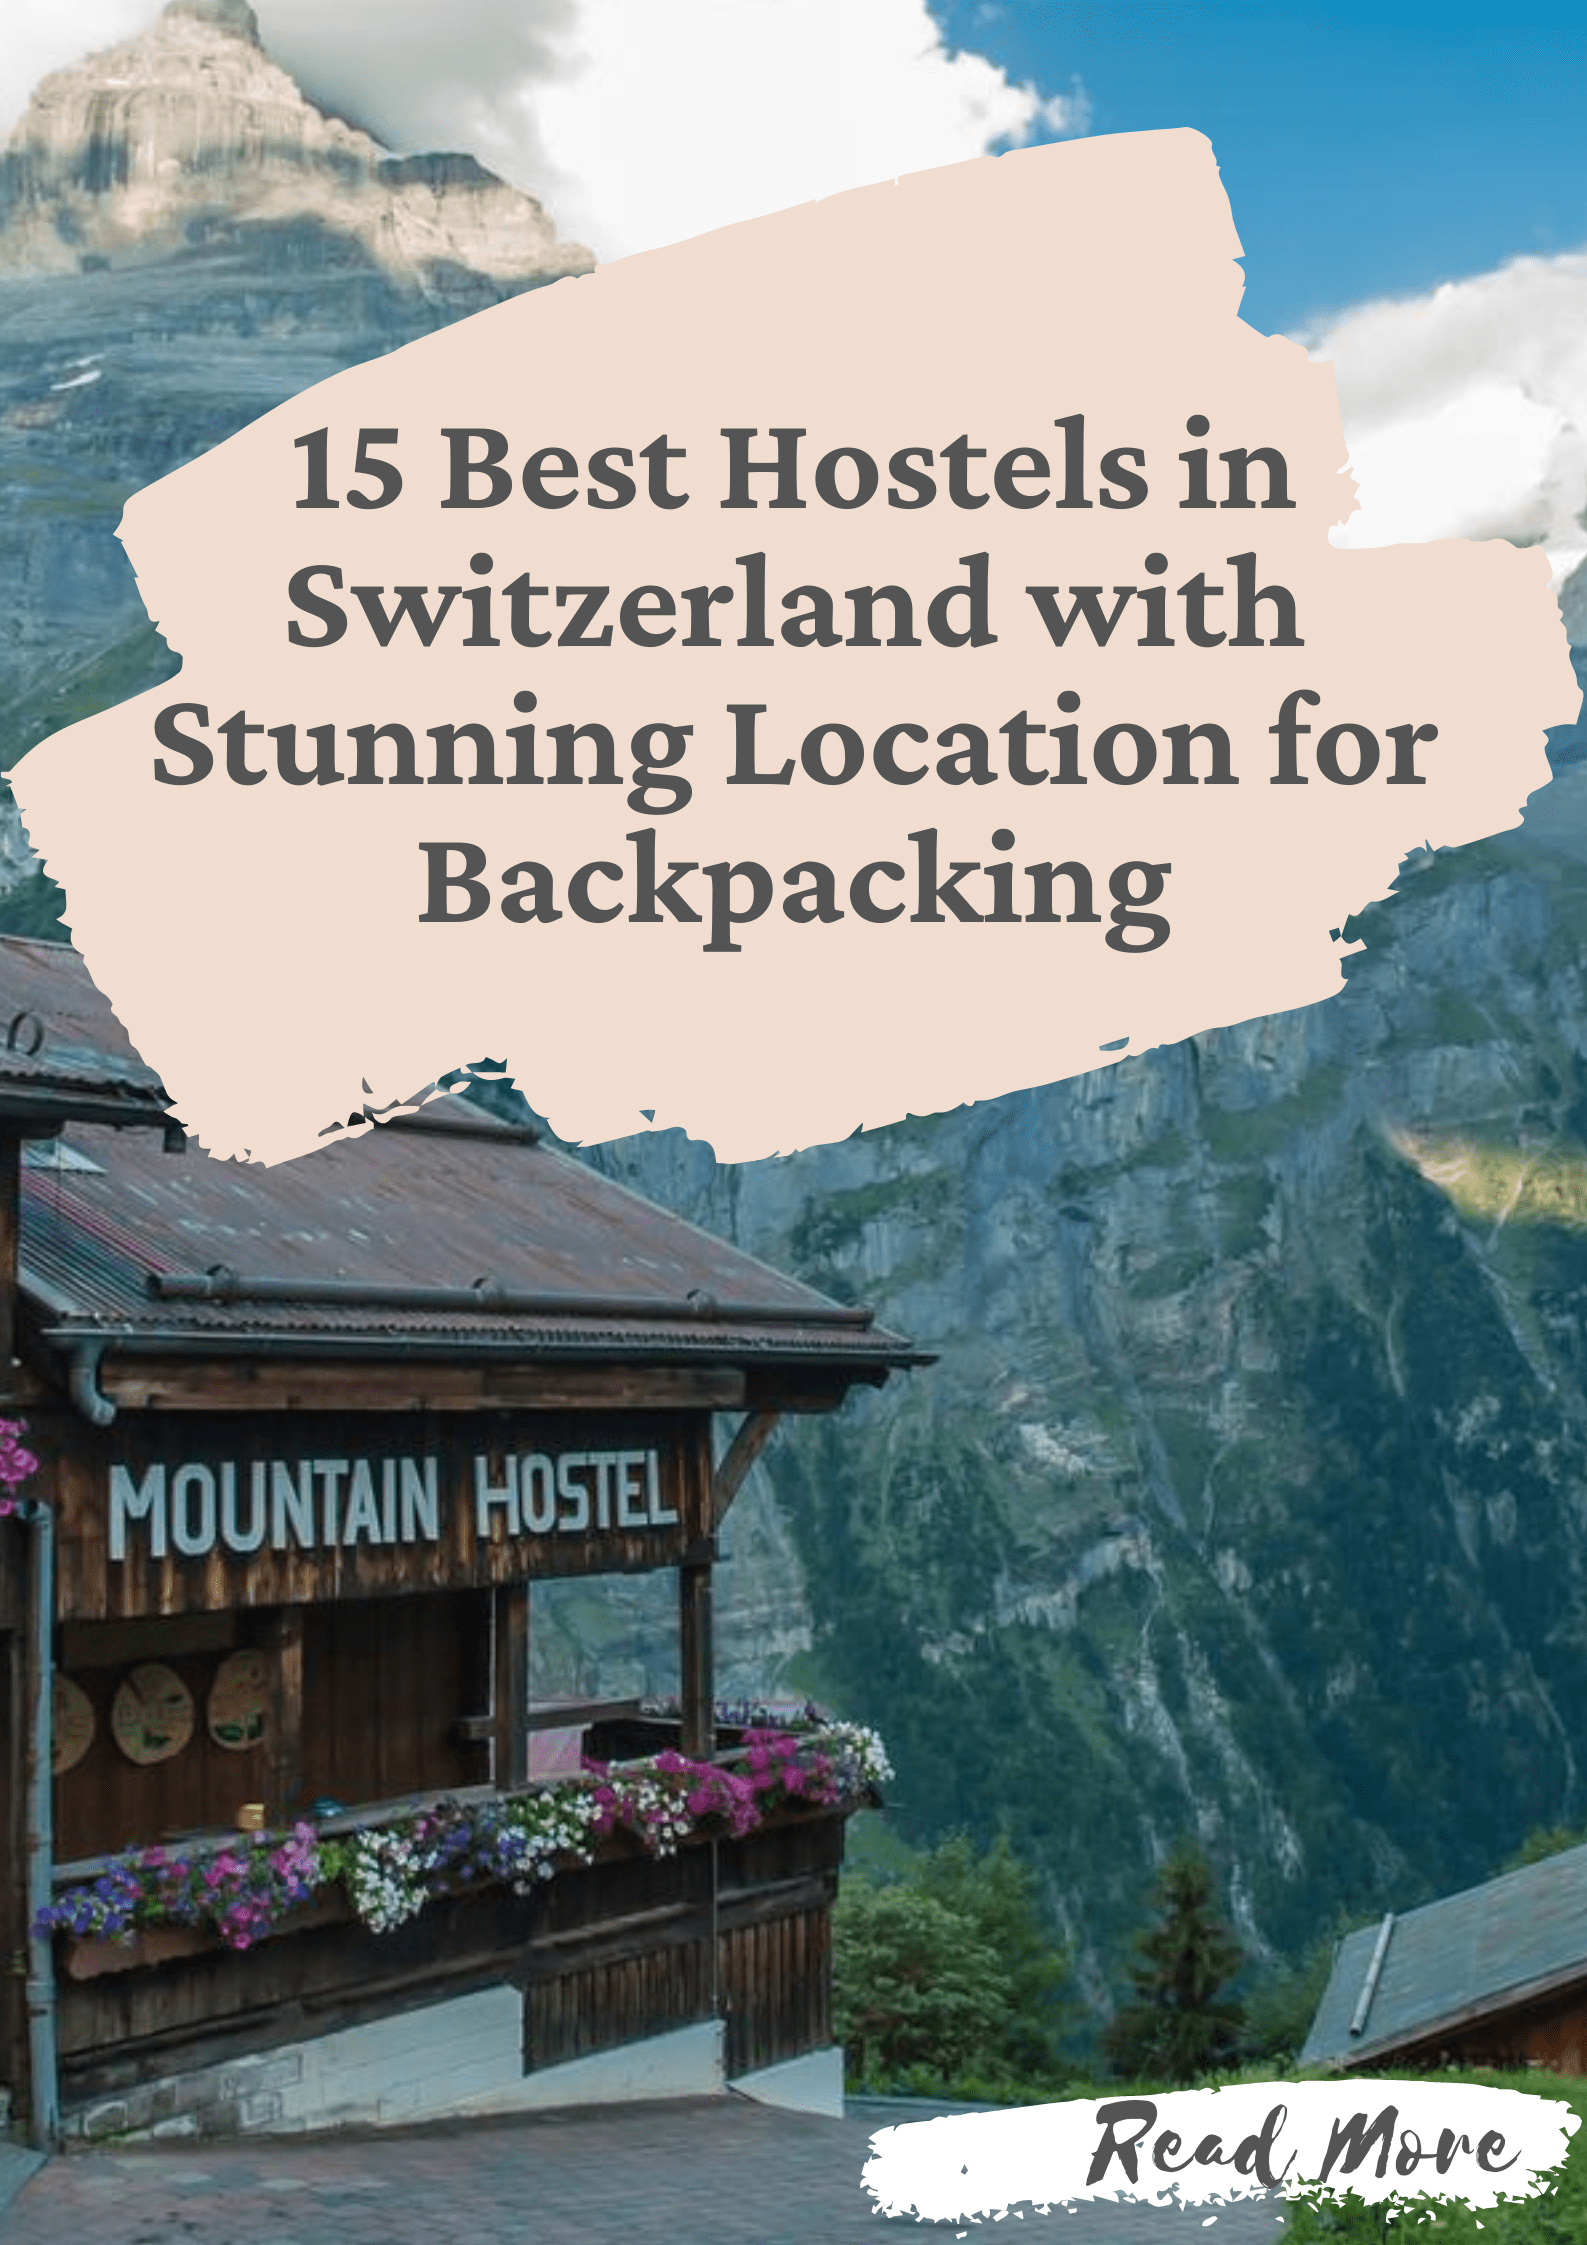 15 Best Hostels in Switzerland with Stunning Location for Backpacking